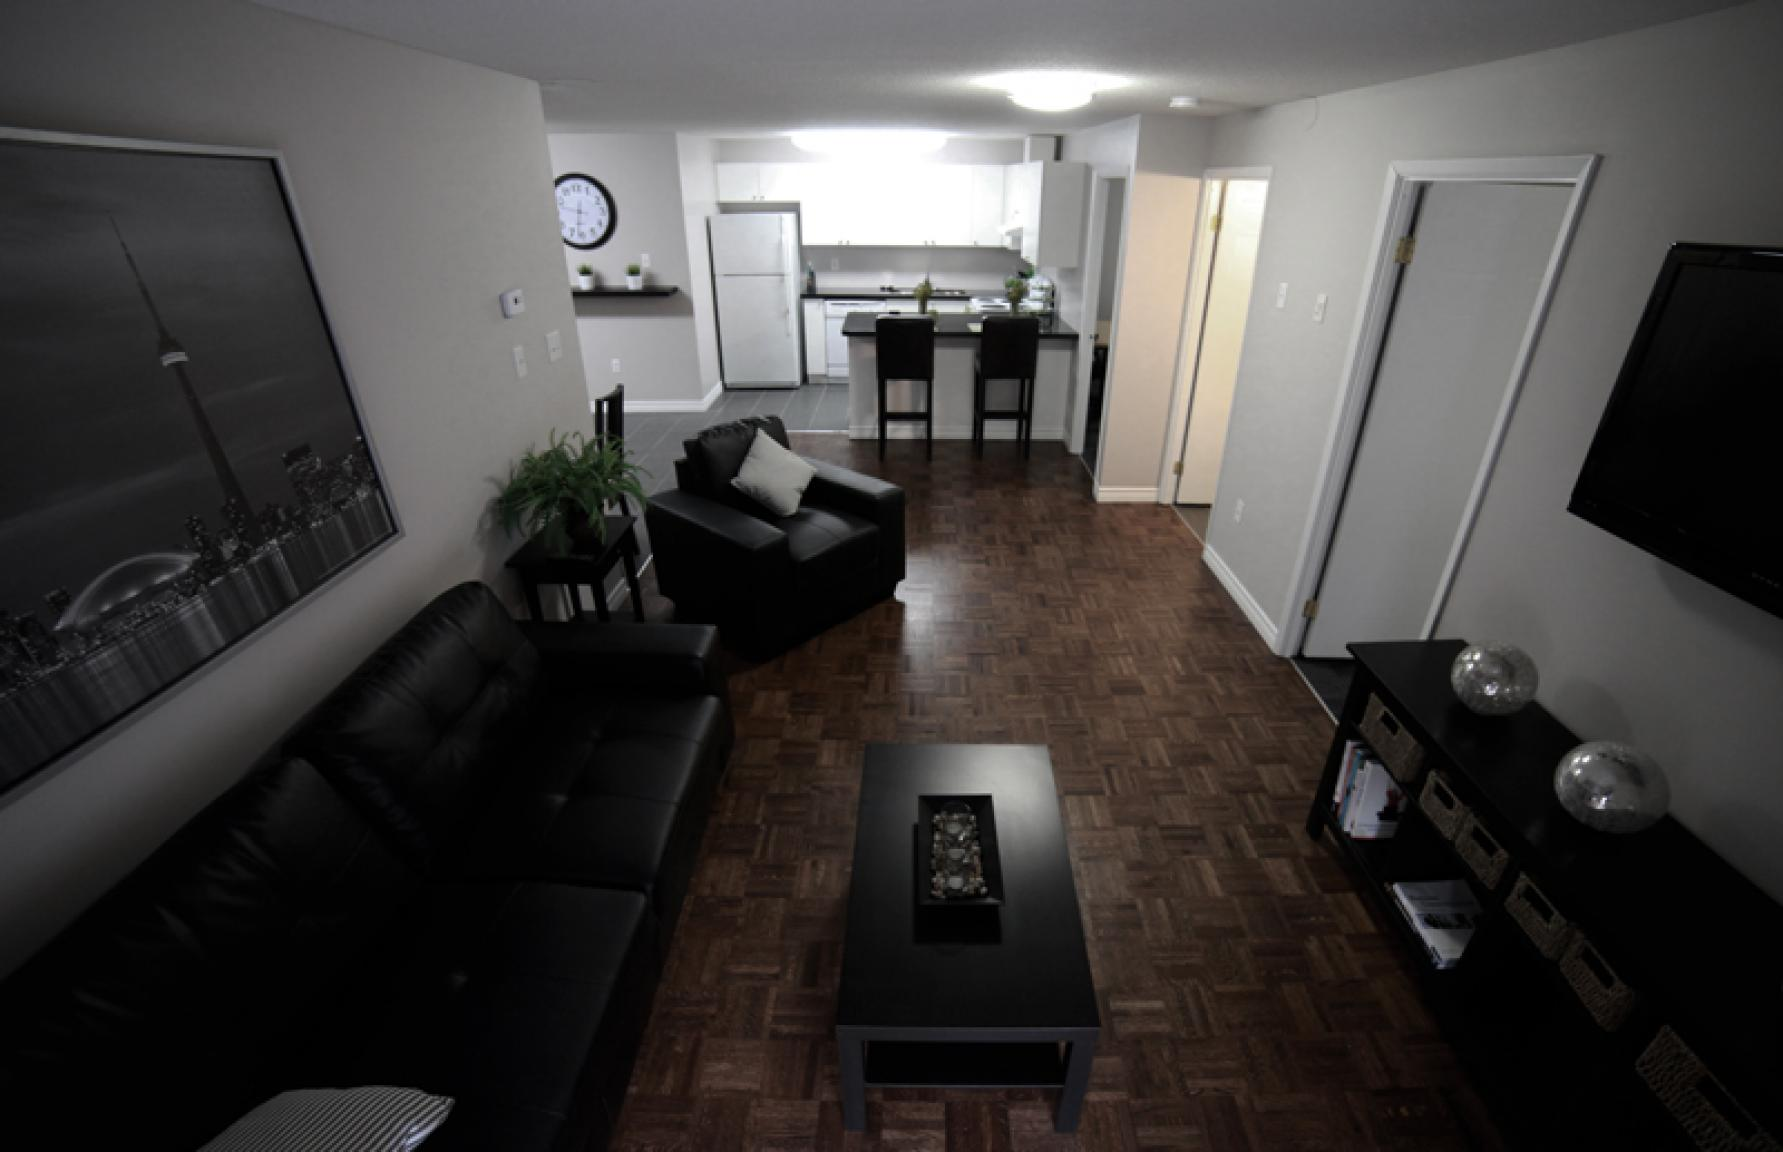 75 ann street london on apartments for rent